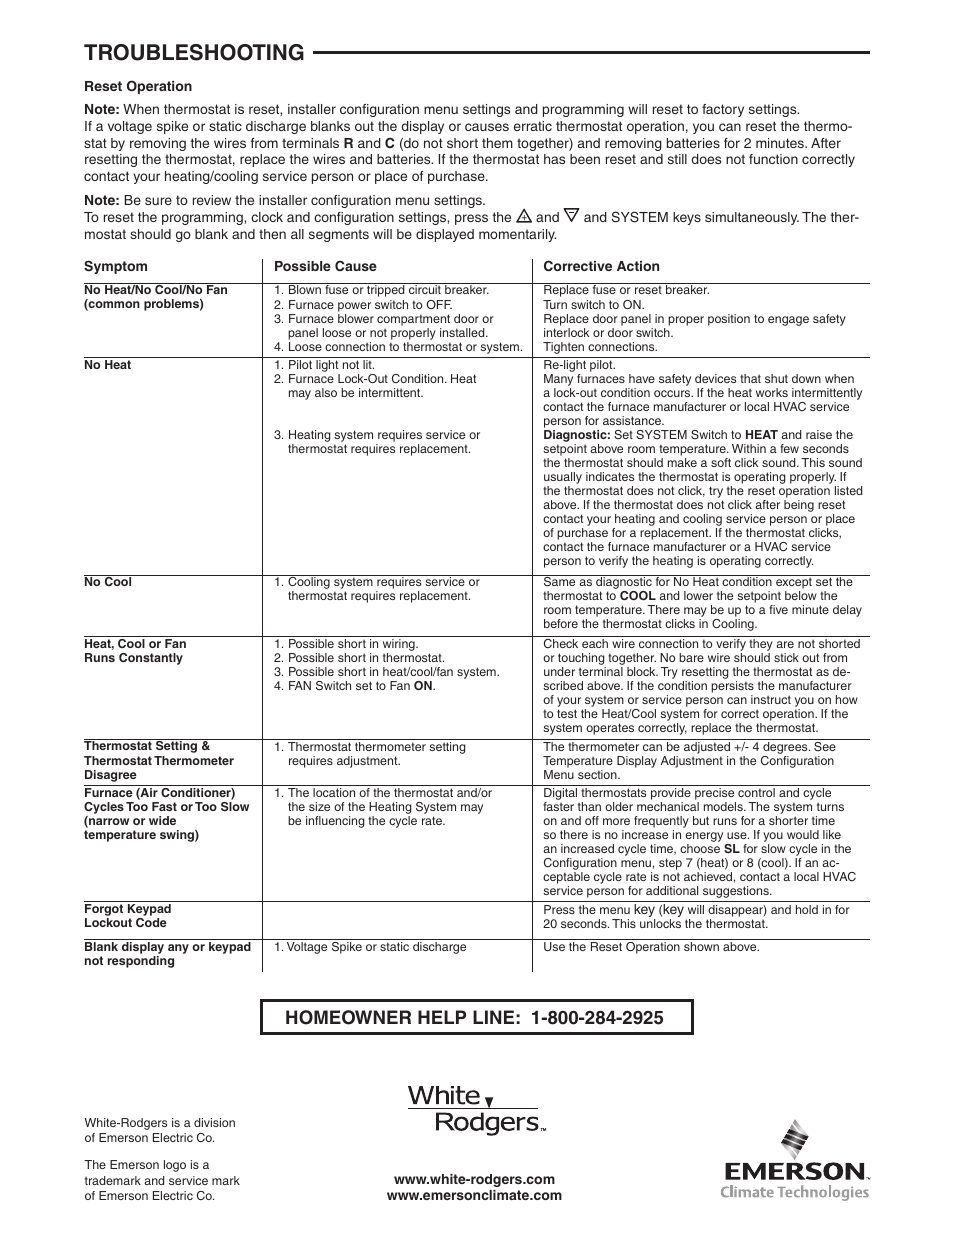 Troubleshooting   White Rodgers 1F95-1291 User Manual   Page